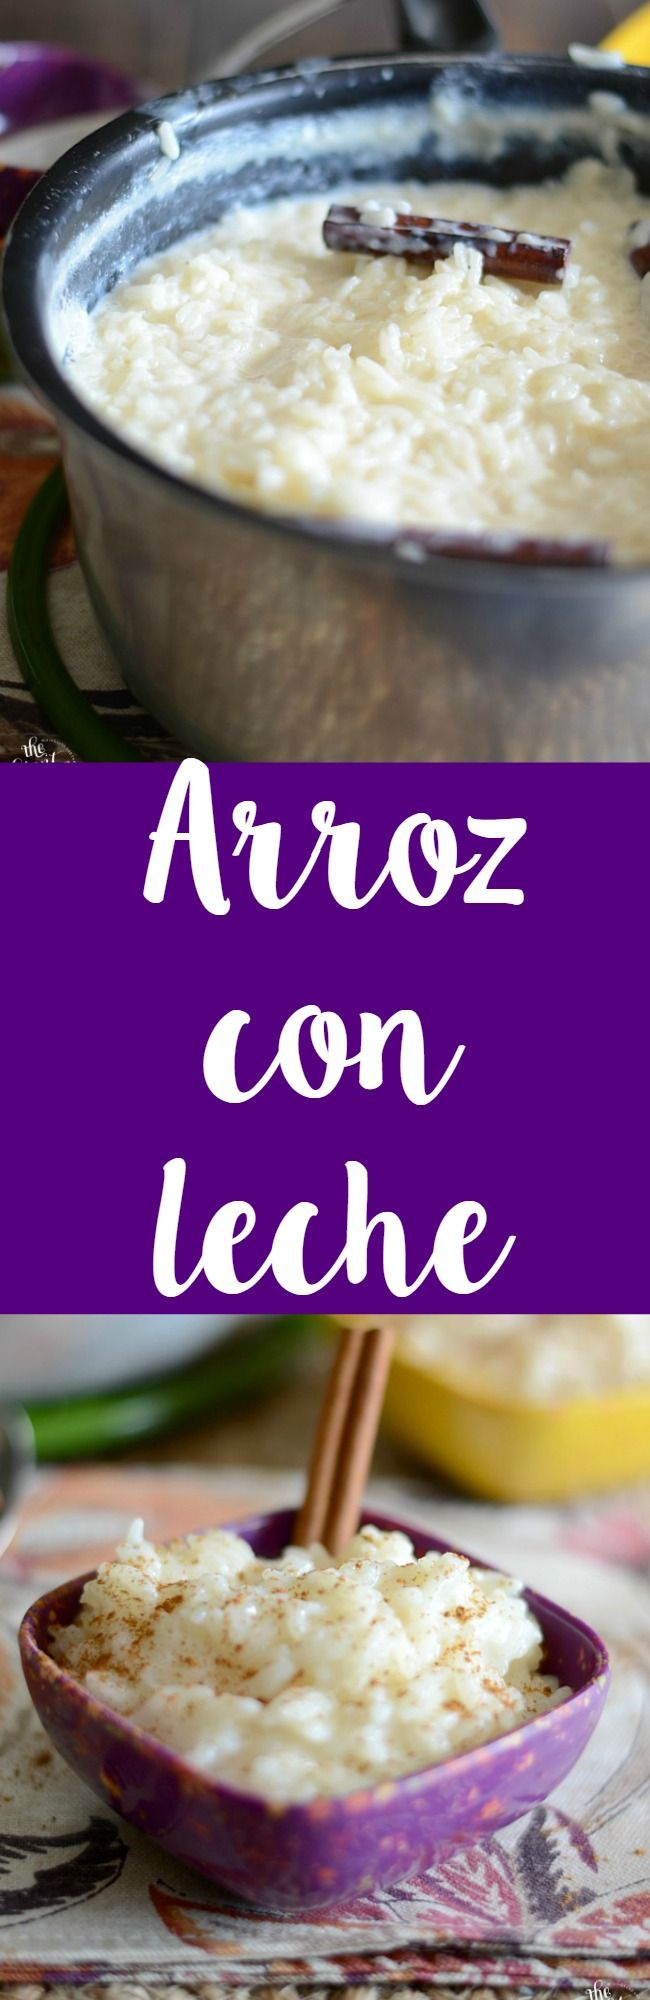 Homemade arroz con leche recipe! This recipe is super easy to make and everyone will love it!: